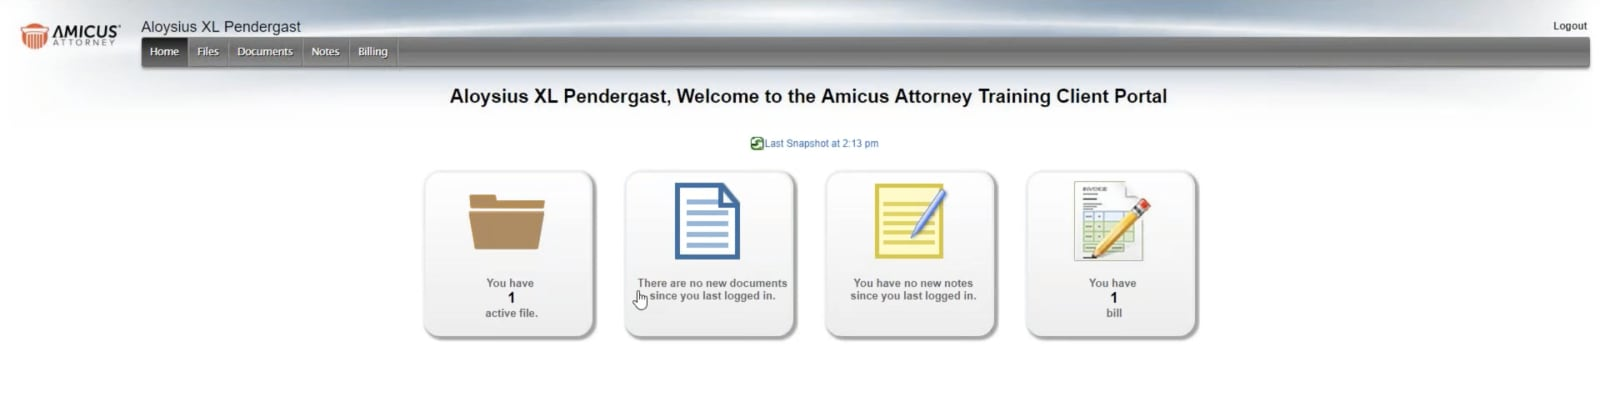 amicus attorney client portal image